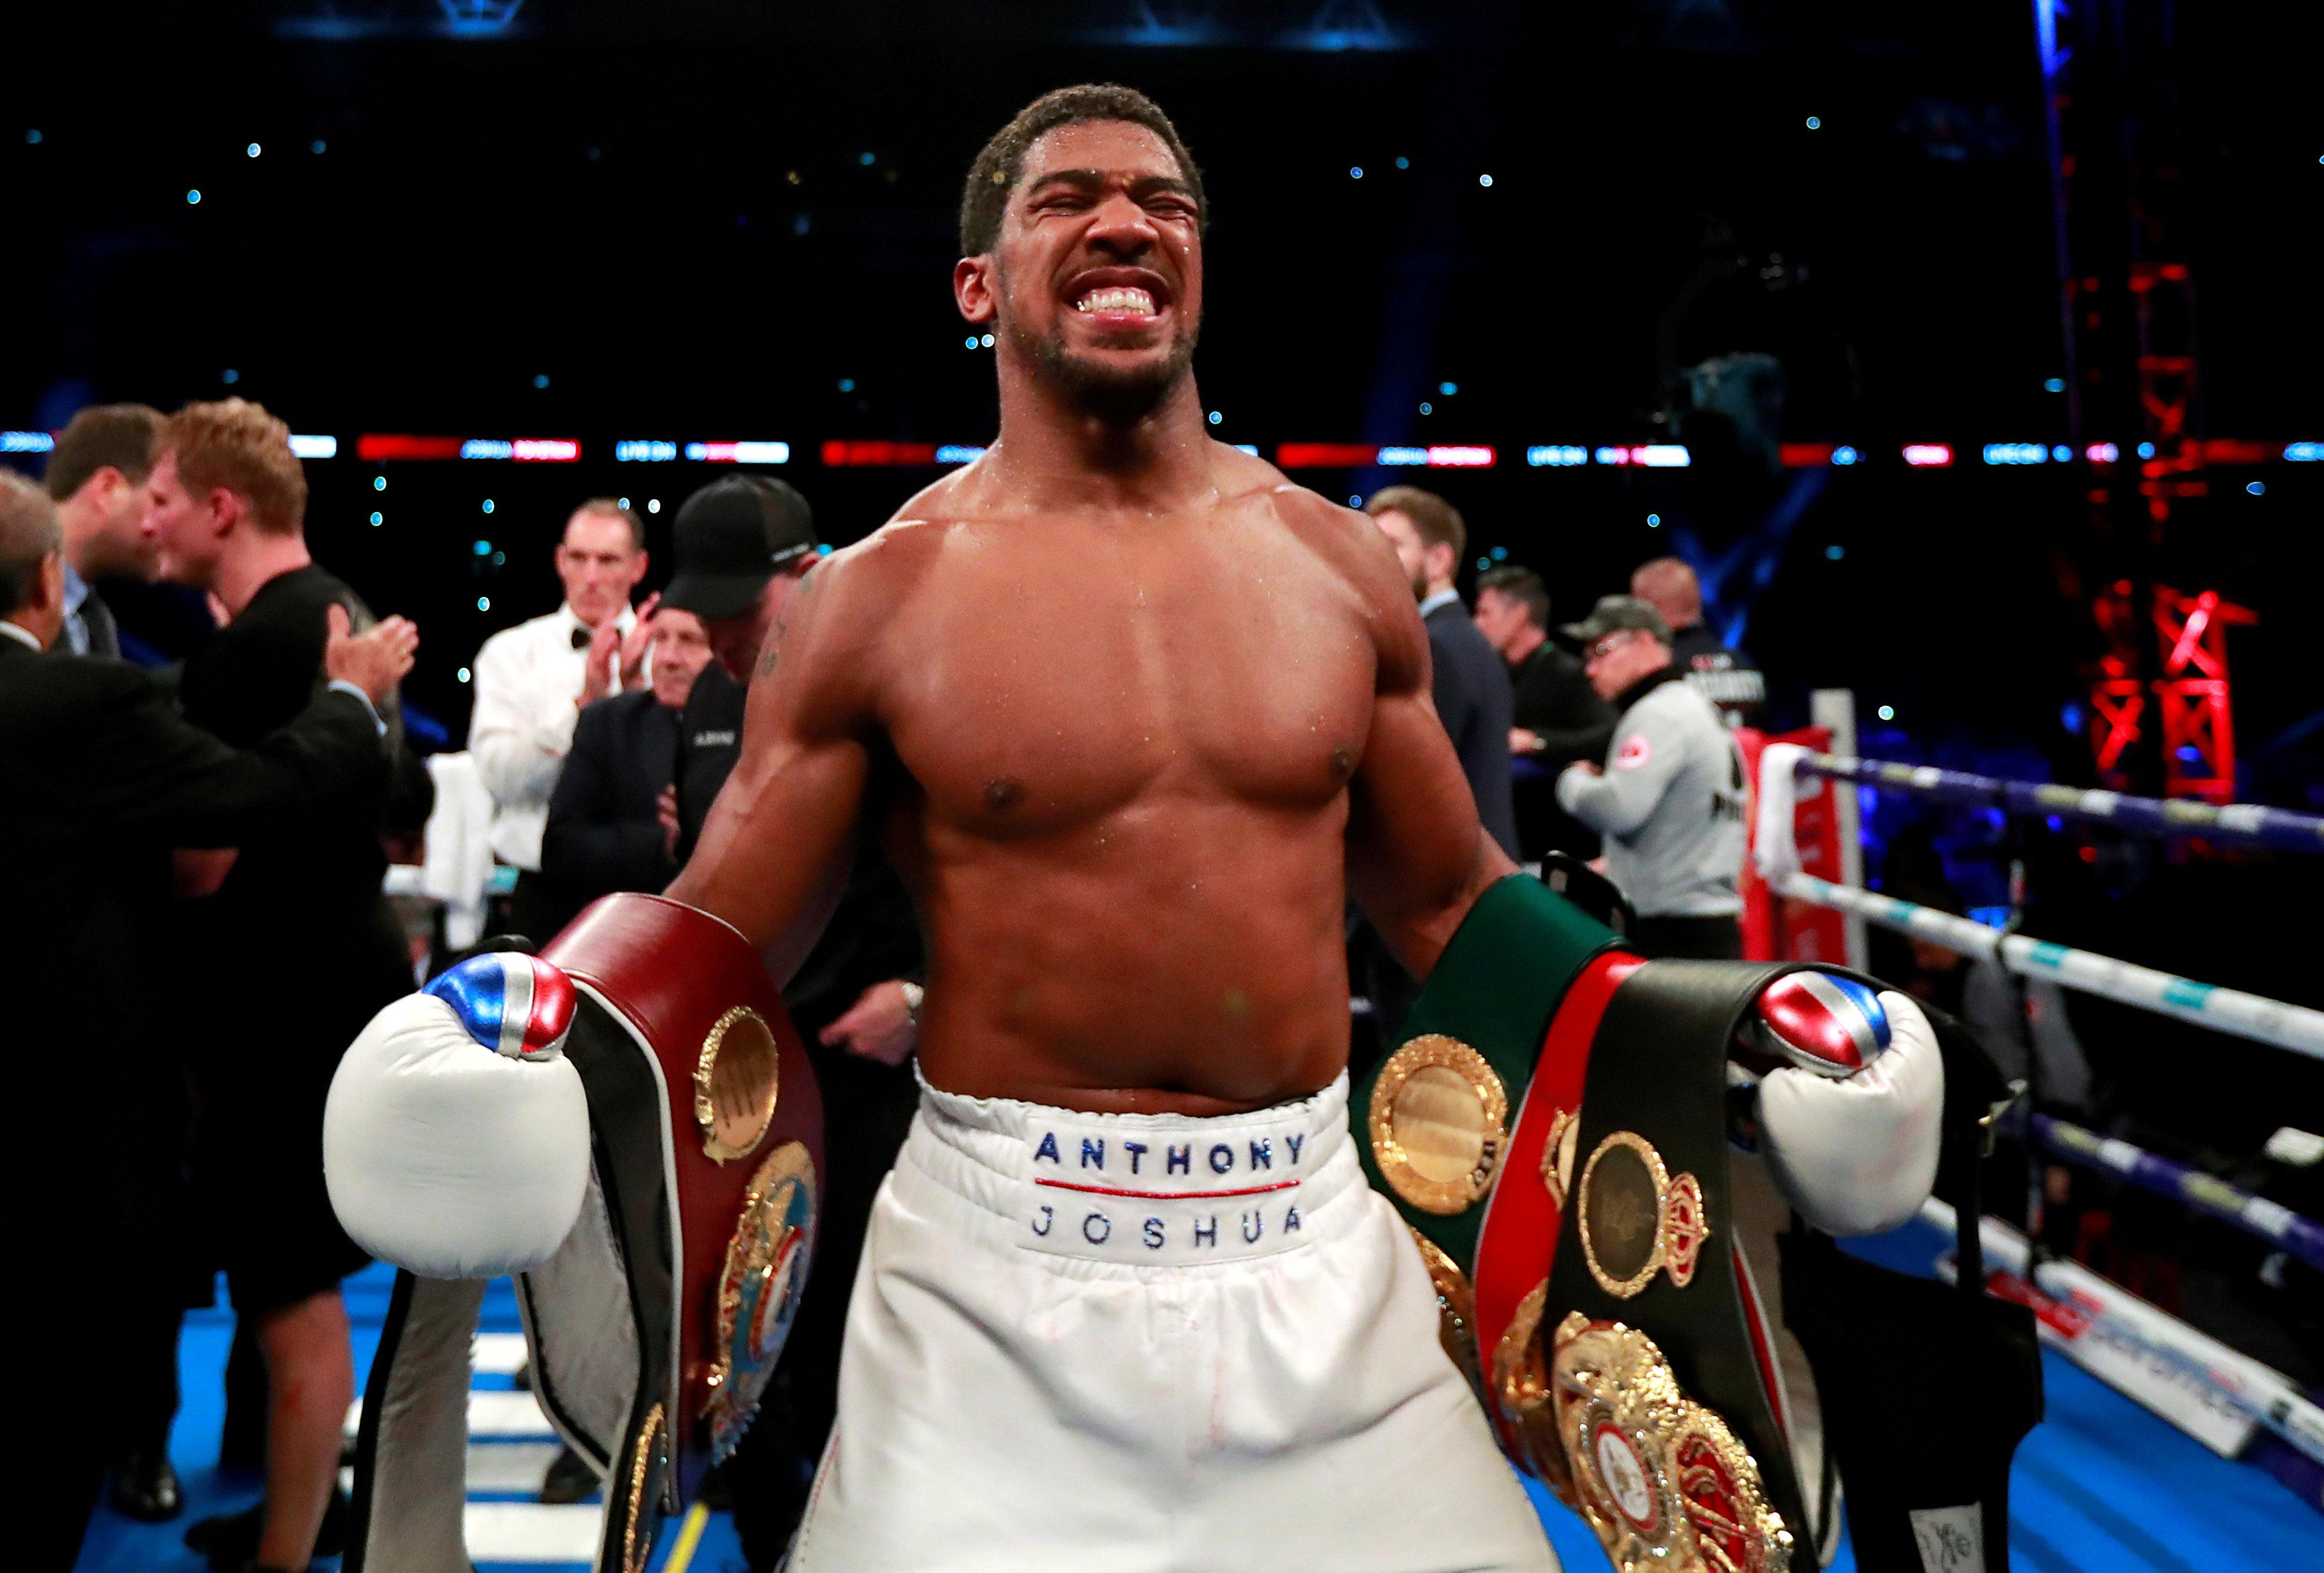 AJ retained his unbeaten record after a 21st knockout in 22 fights